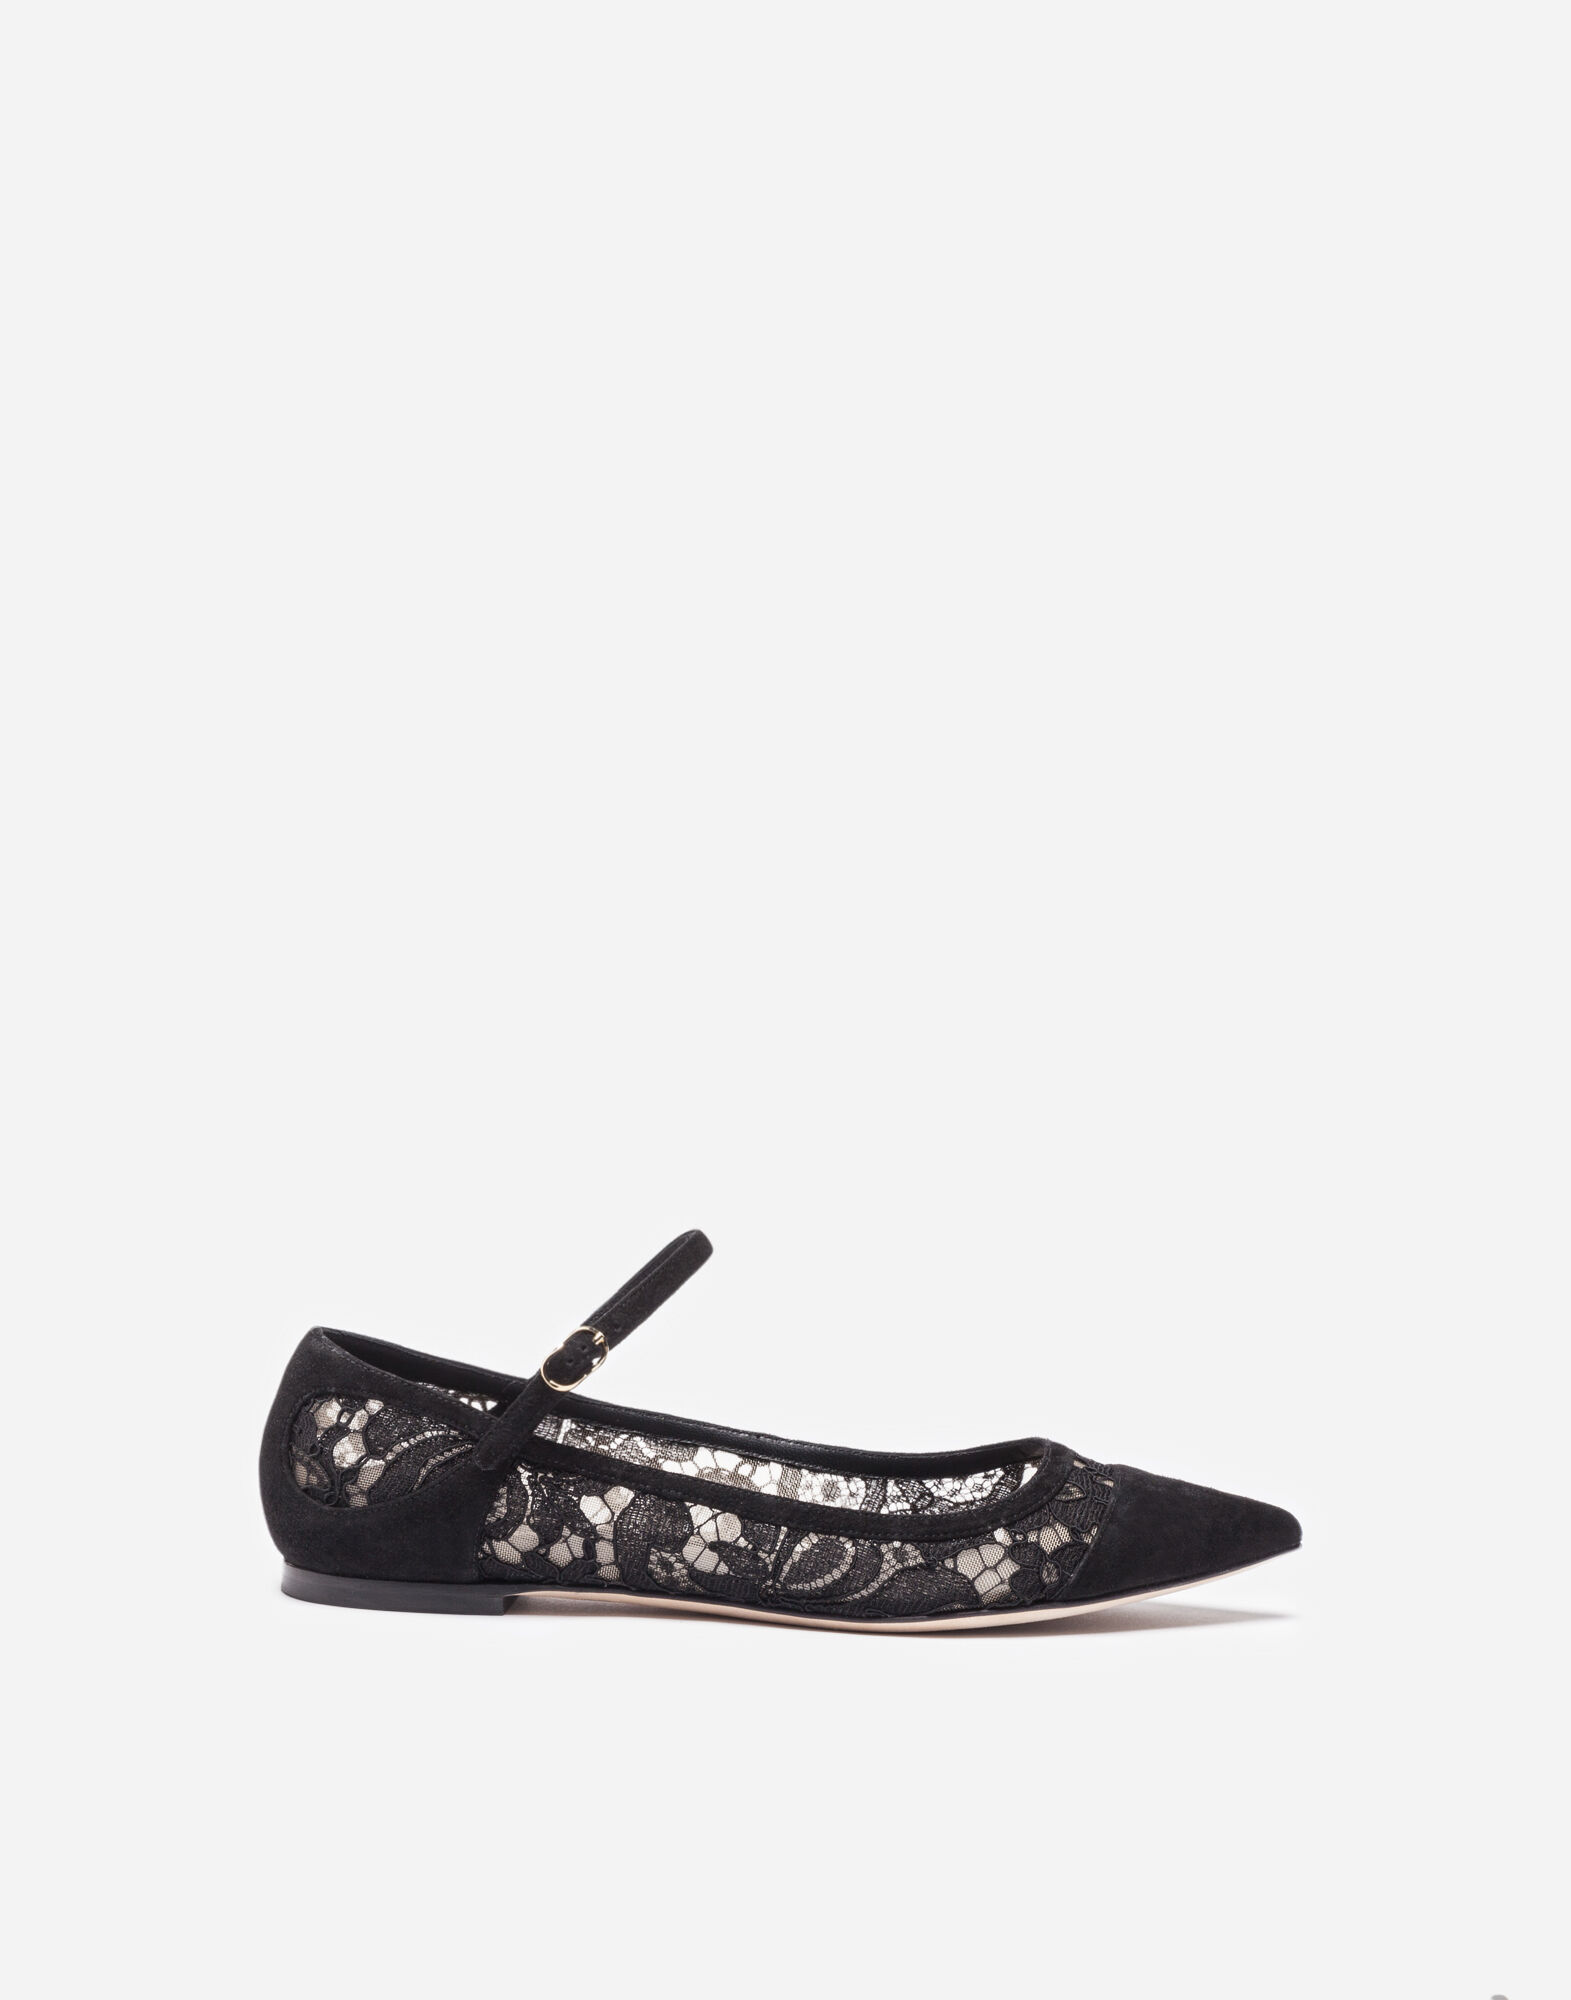 sale low shipping Dolce & Gabbana Lace and suede ballerinas discount big sale official online a6B9Z76QQ